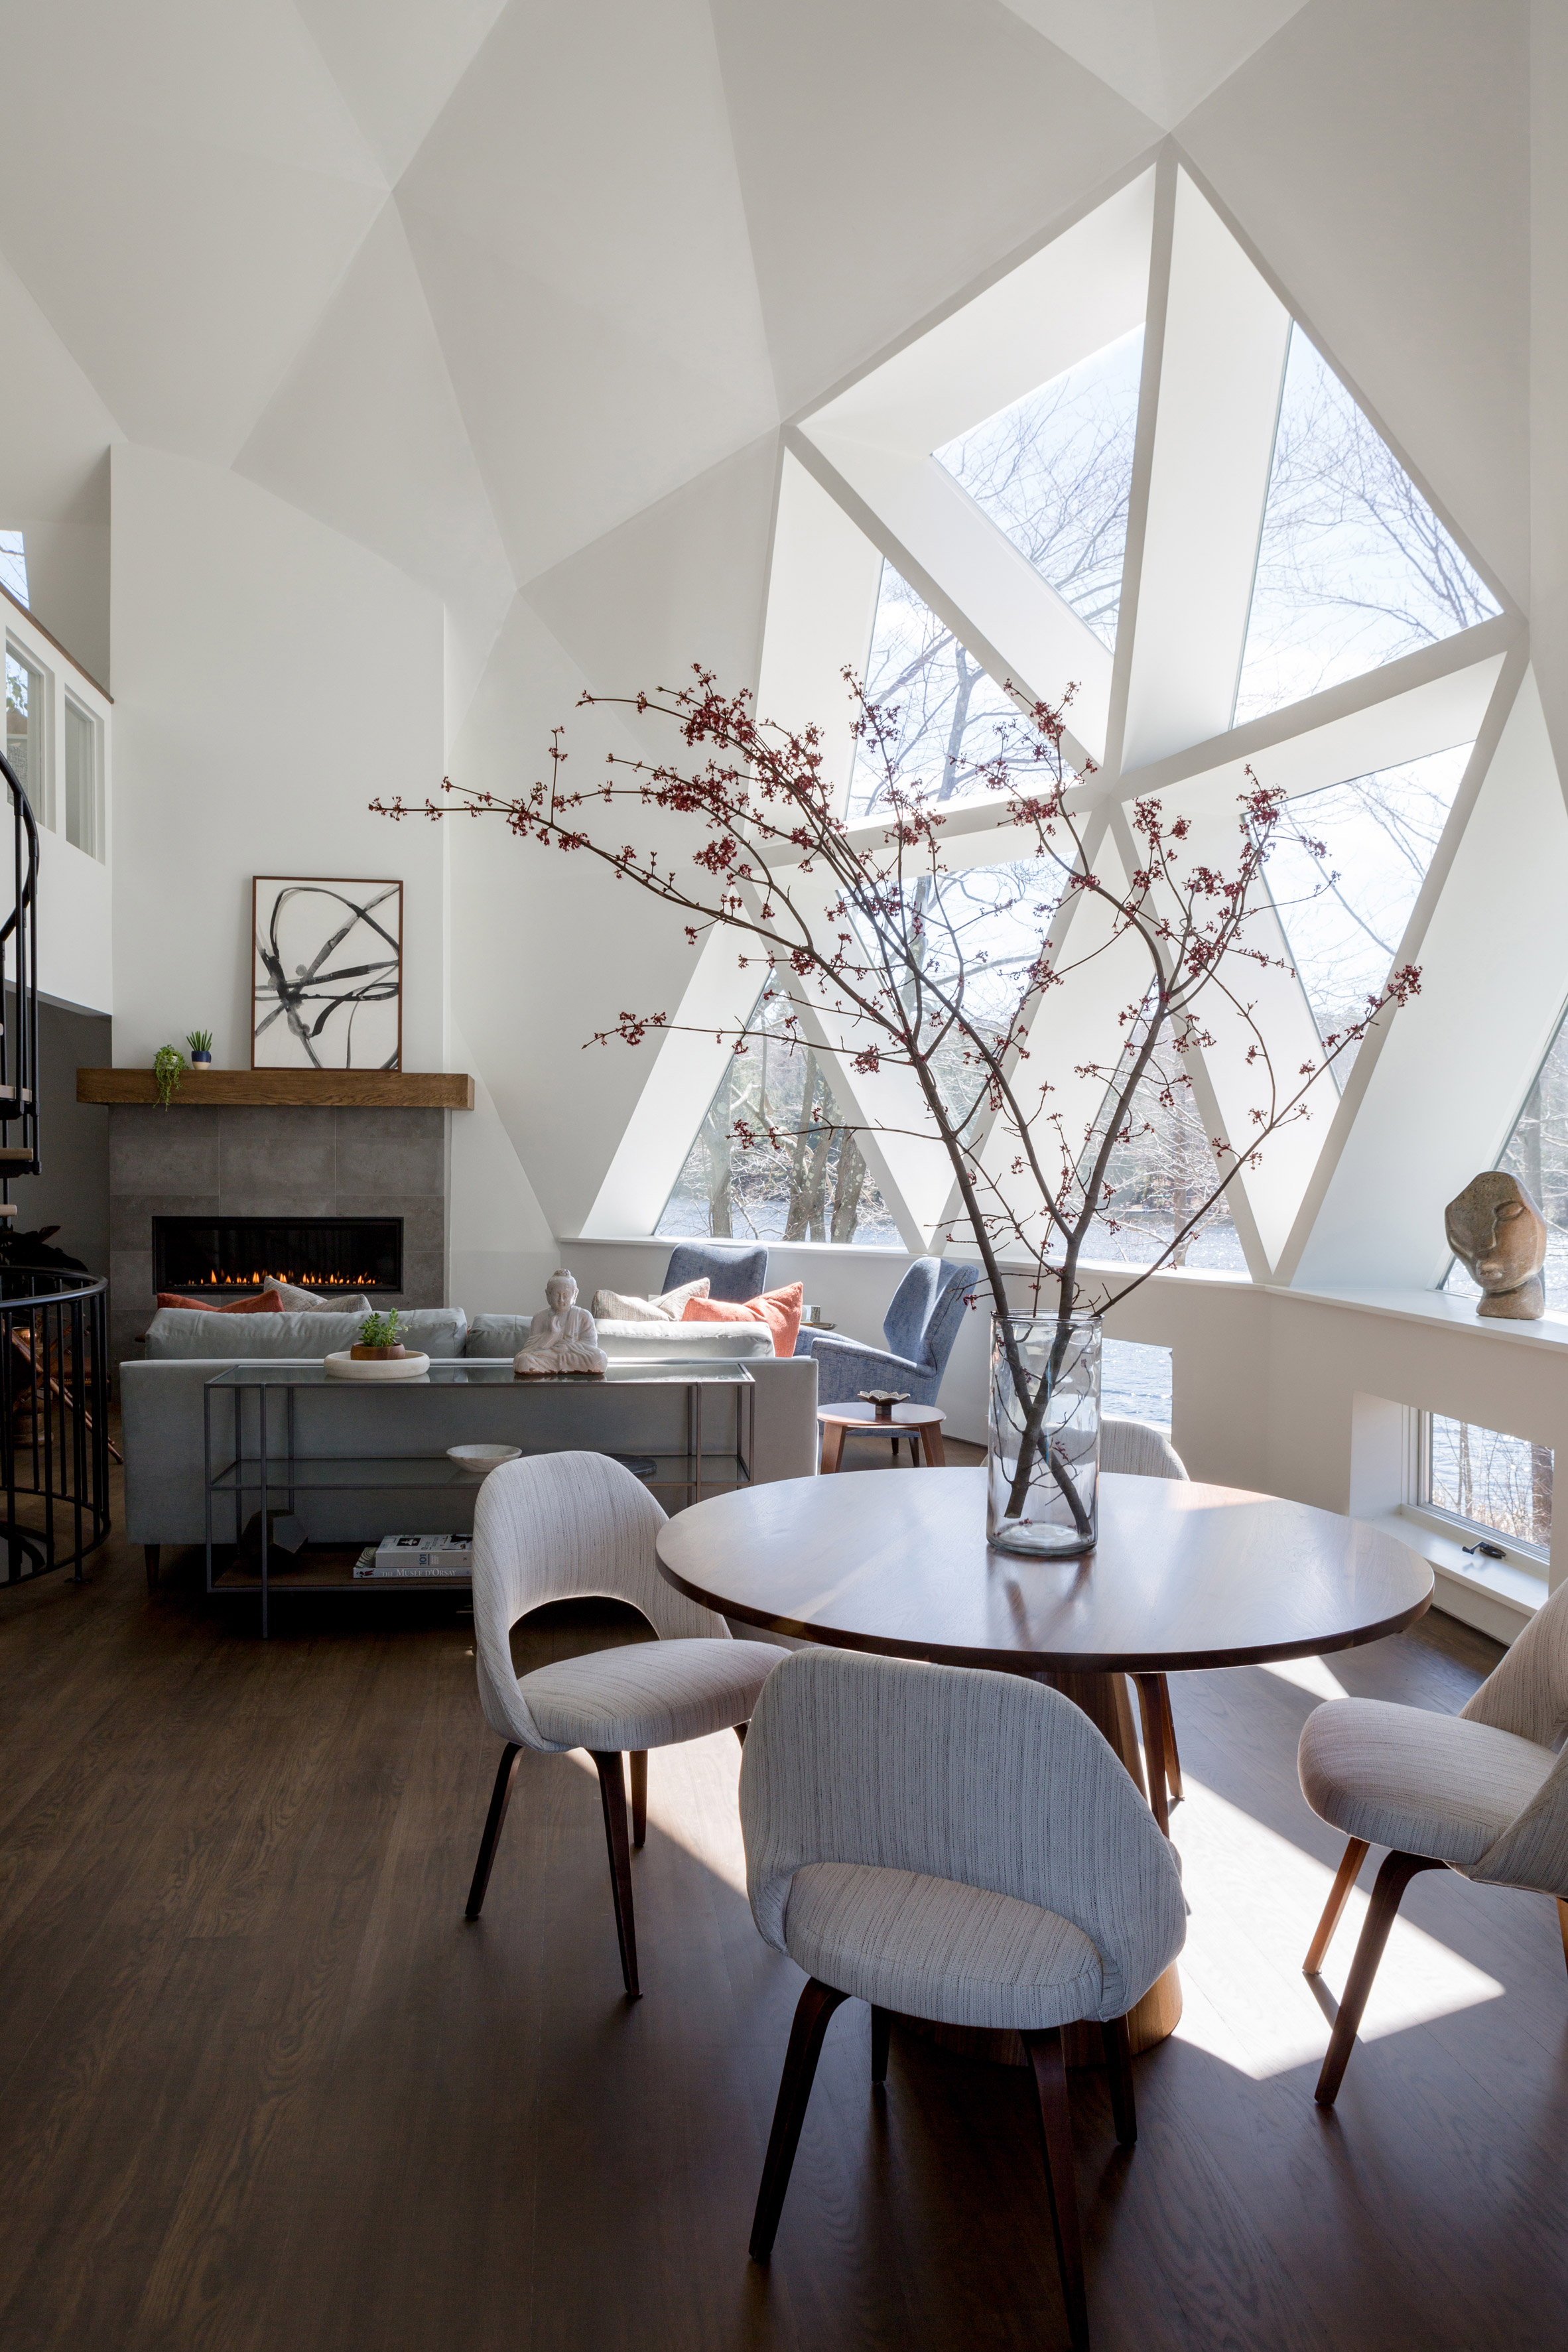 Domed living room with a gray sofa, fireplace, and round dining table with chairs, in front of triangular windows.